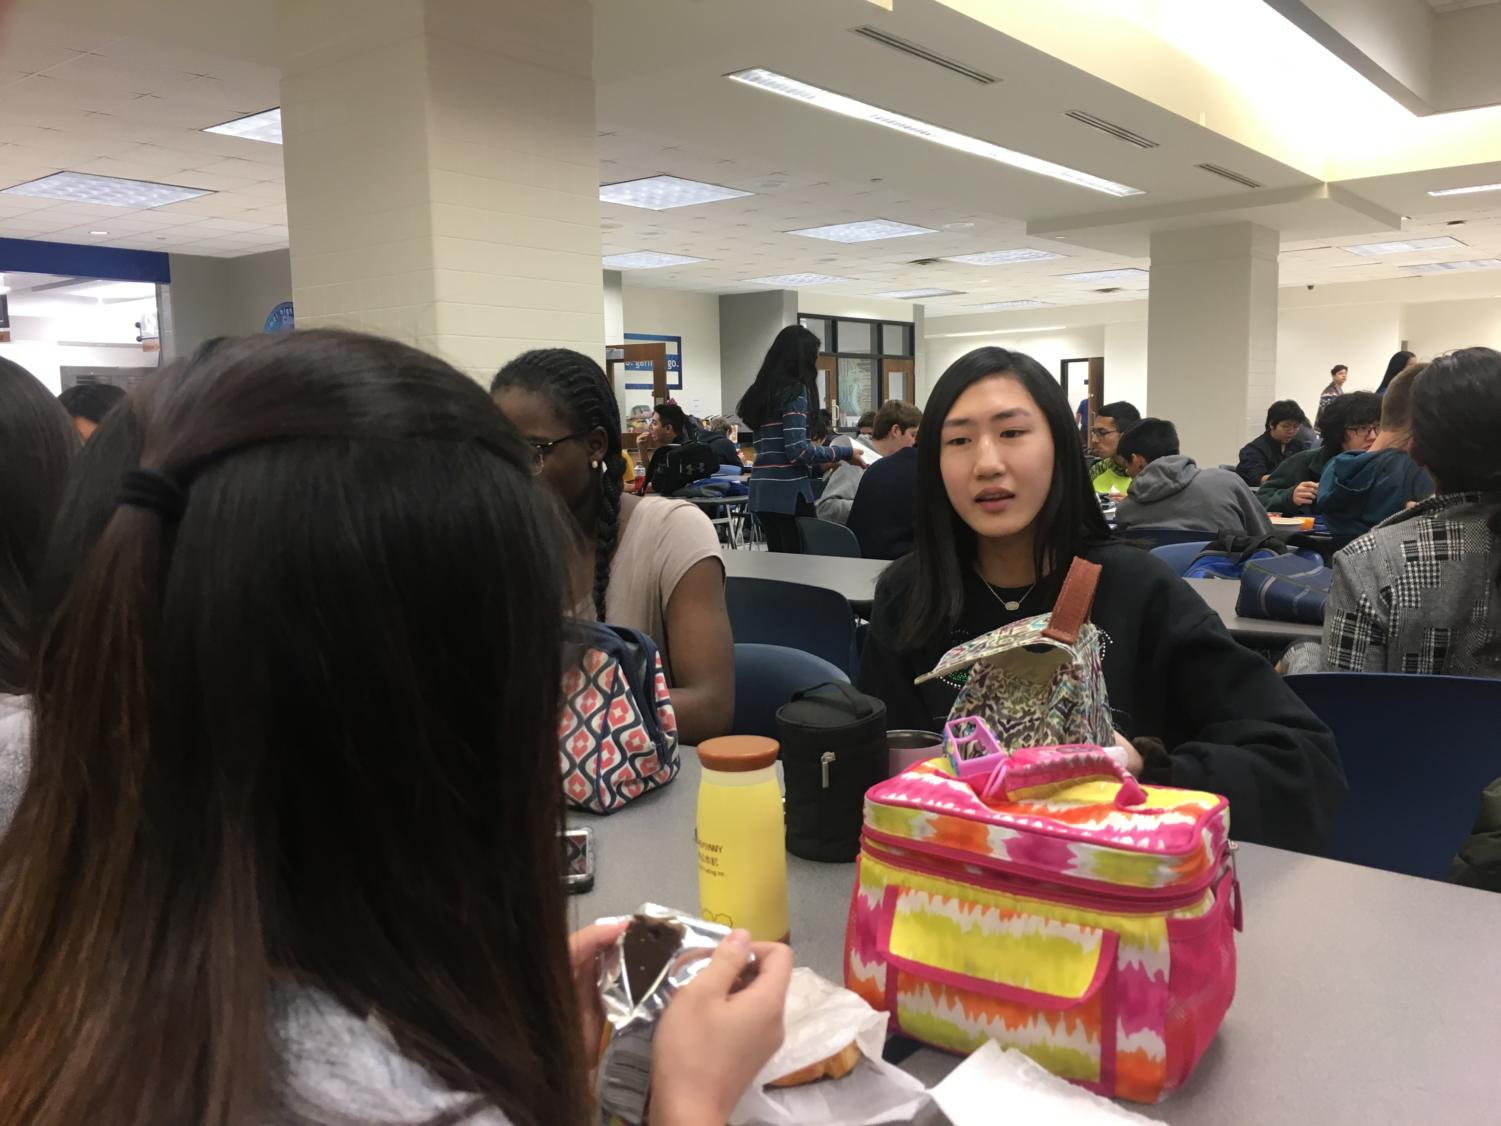 Sophomore Carol You talks to her friends during lunch. You said she is excited to give a TED talk at the conference on Dec. 1 about Asian misrepresentation in the media.